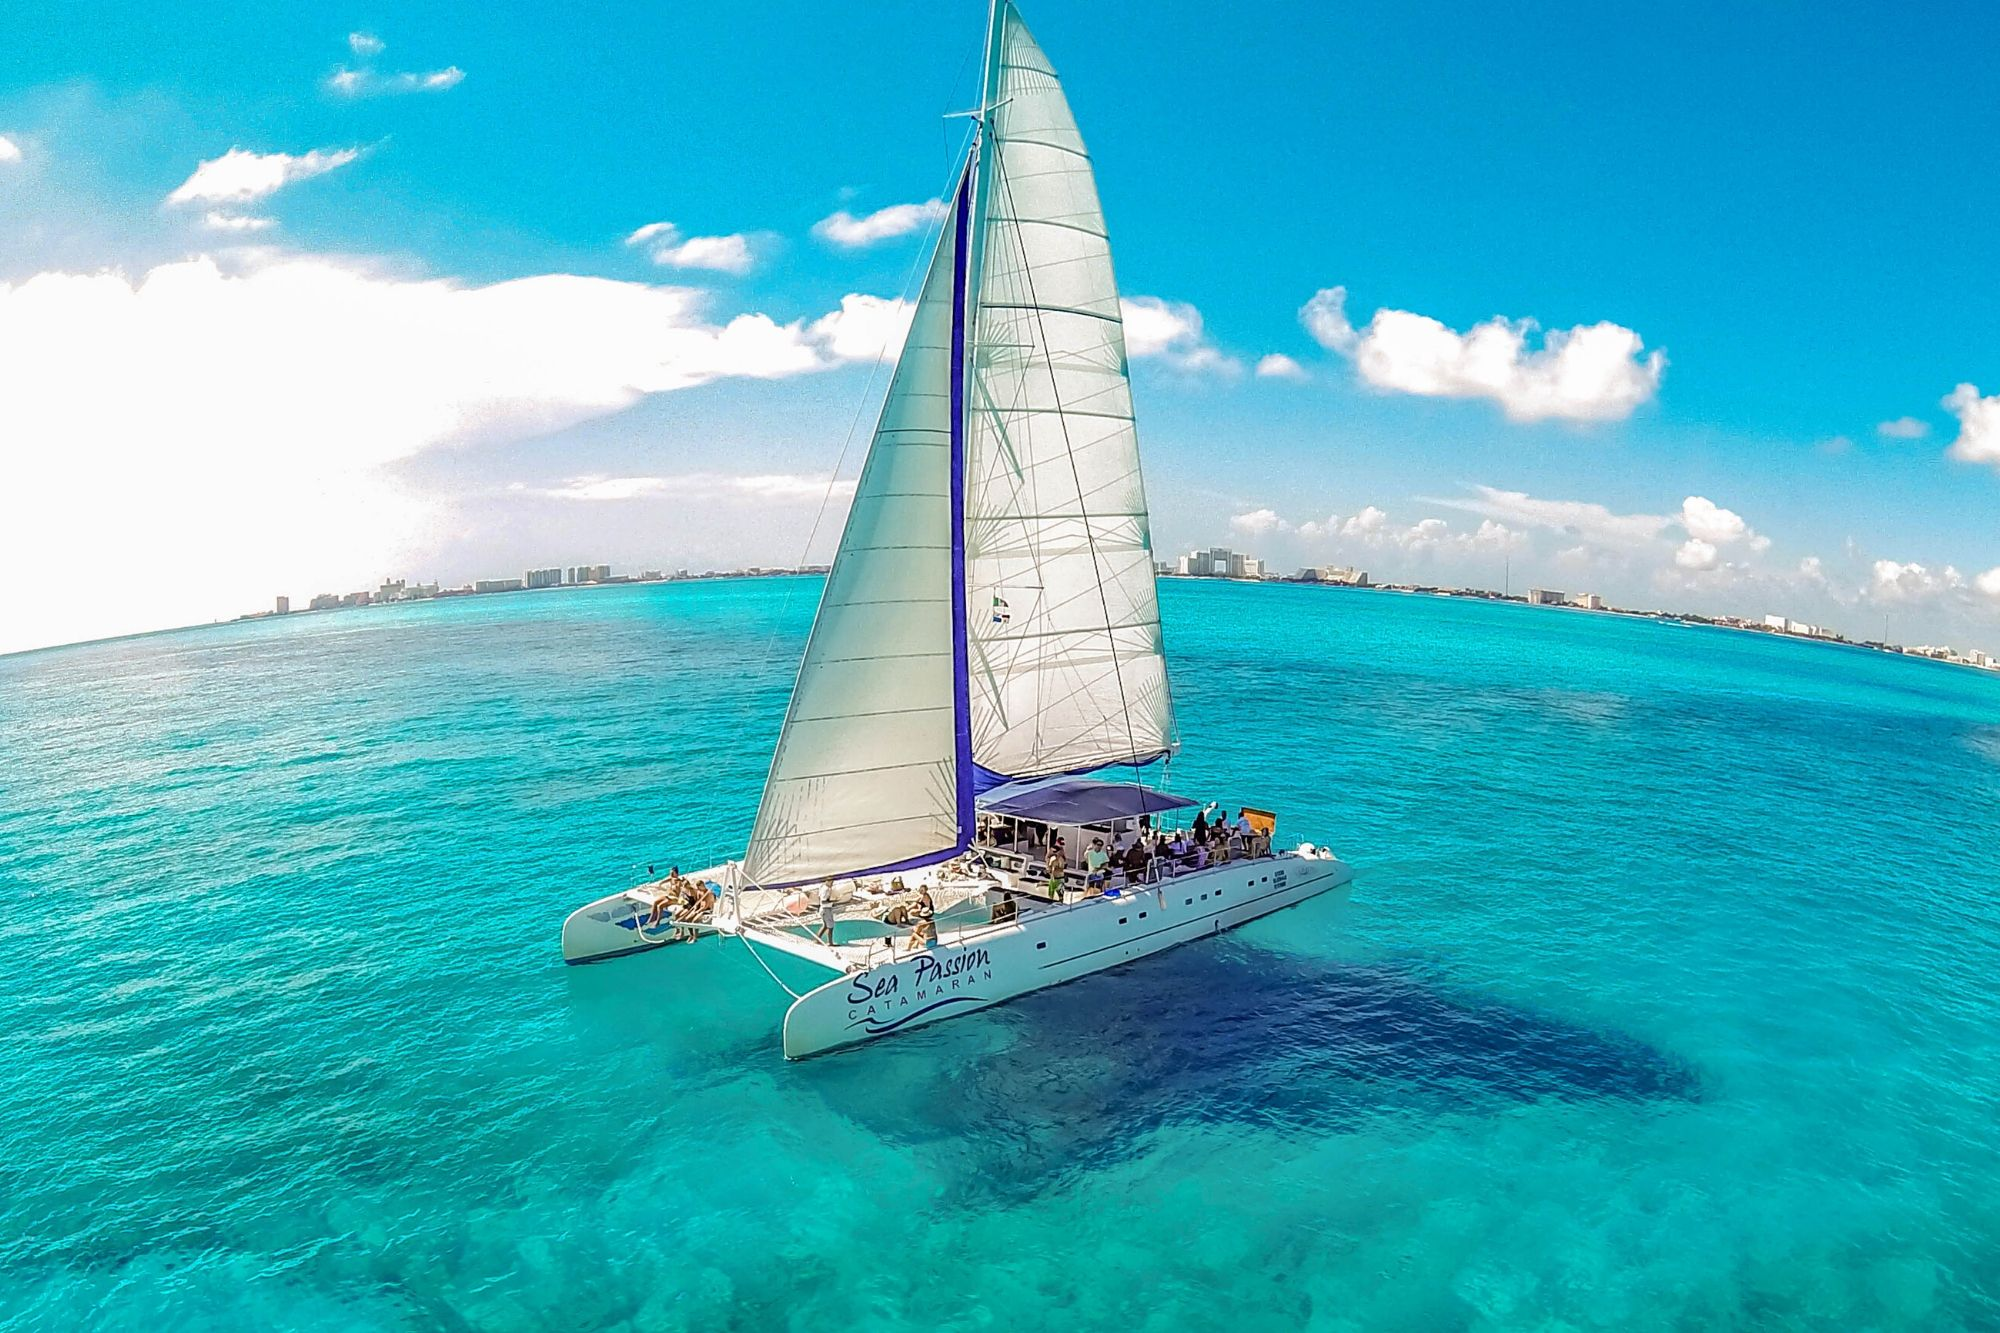 5 Private Isla Mujeres tour in catamaran - Sea Passion I II - Cancun Sailing